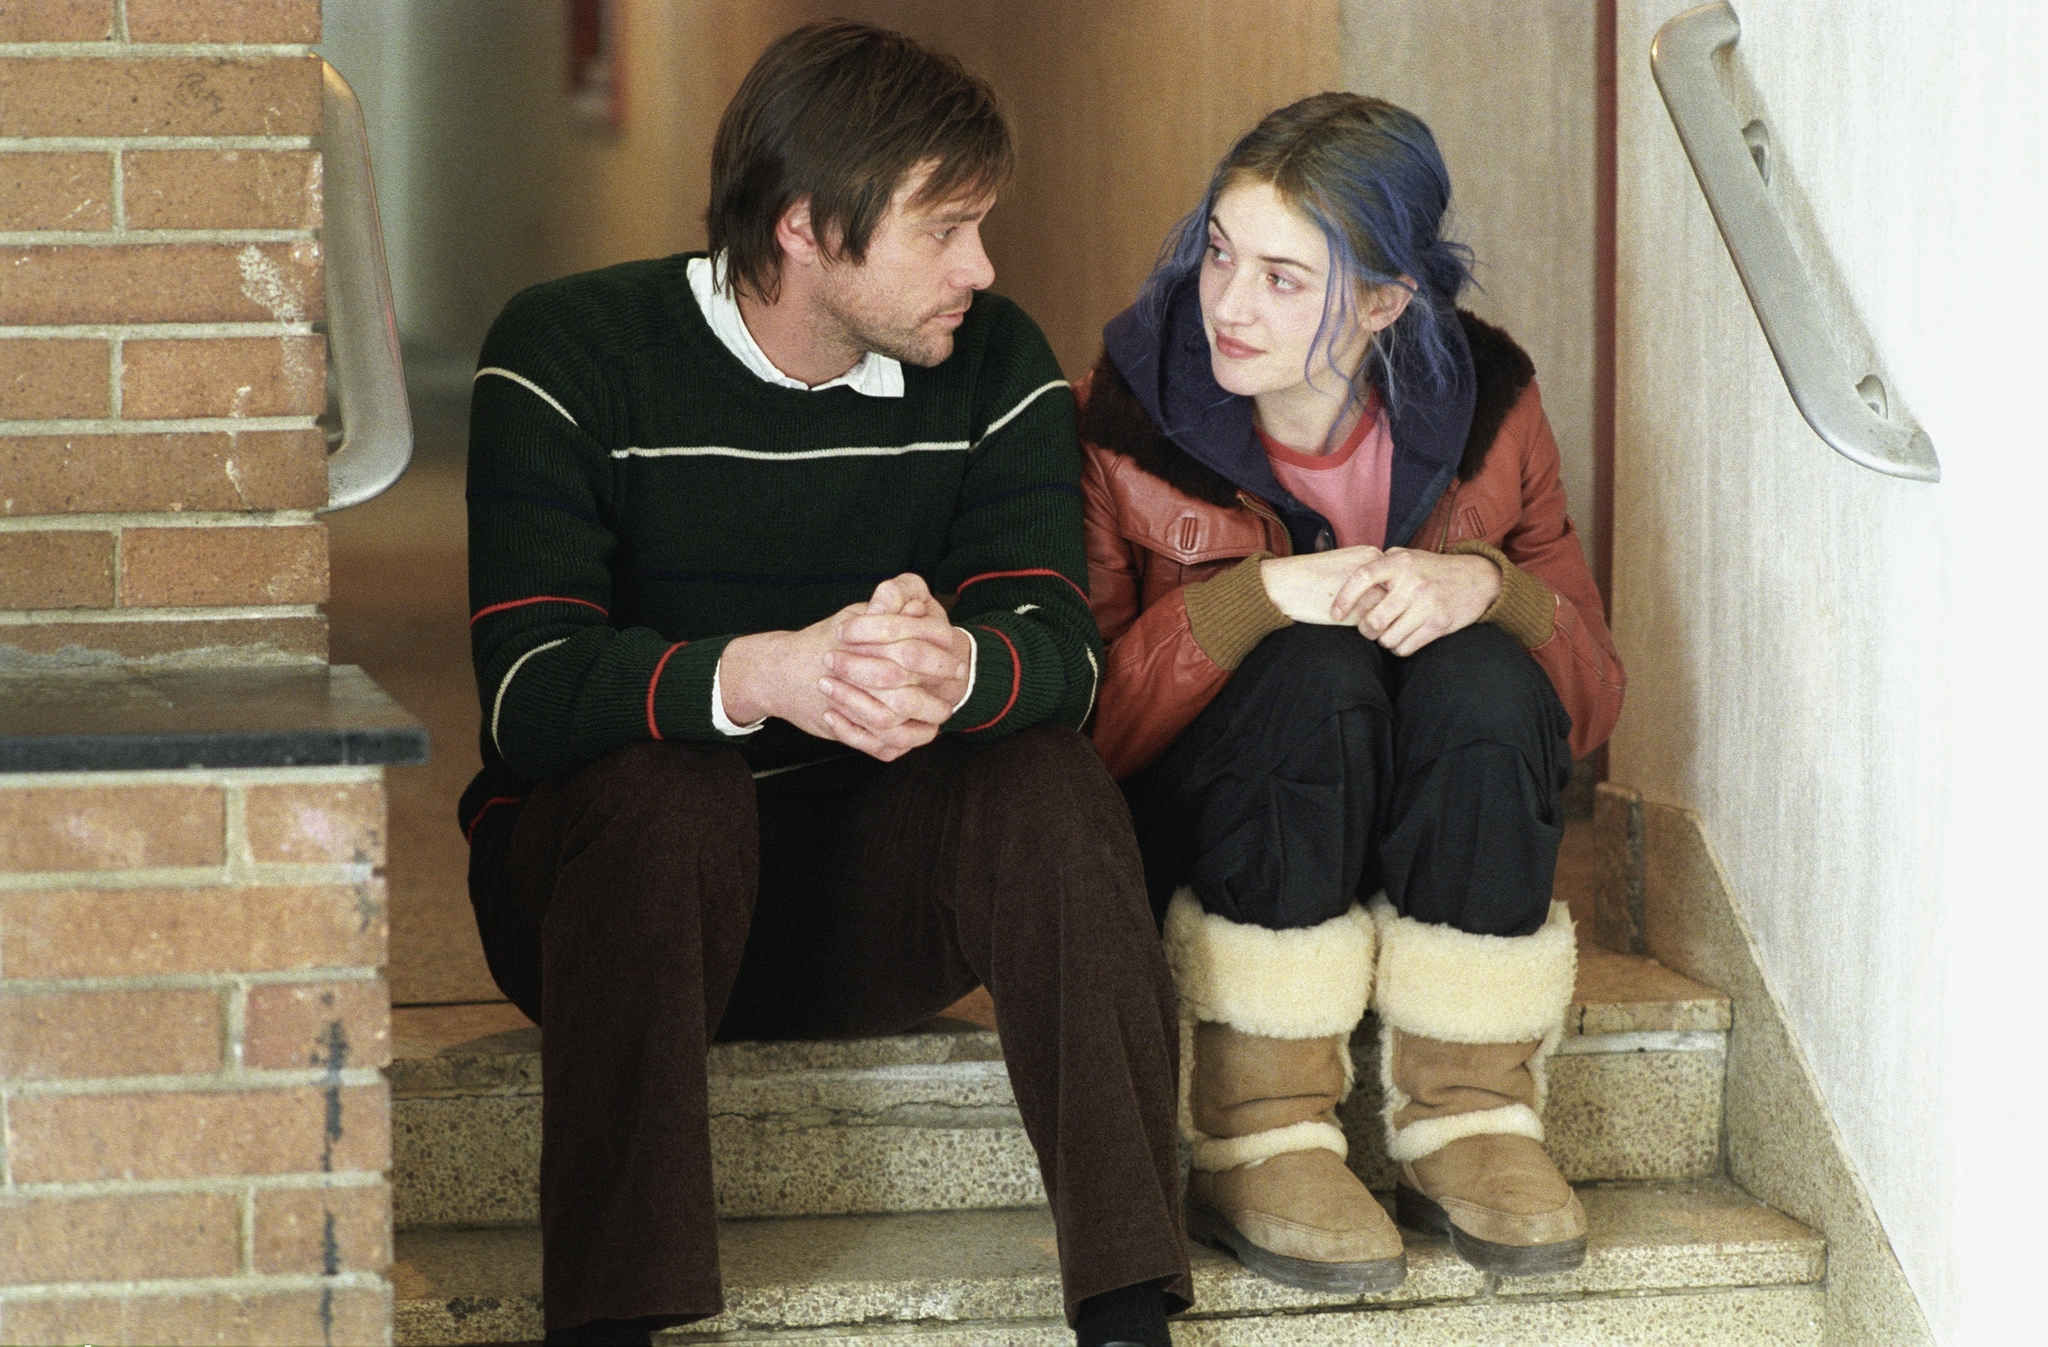 tom hooper 10 great love stories on film  jim carrey and kate winslet in eternal sunshine of the spotless mind 2004